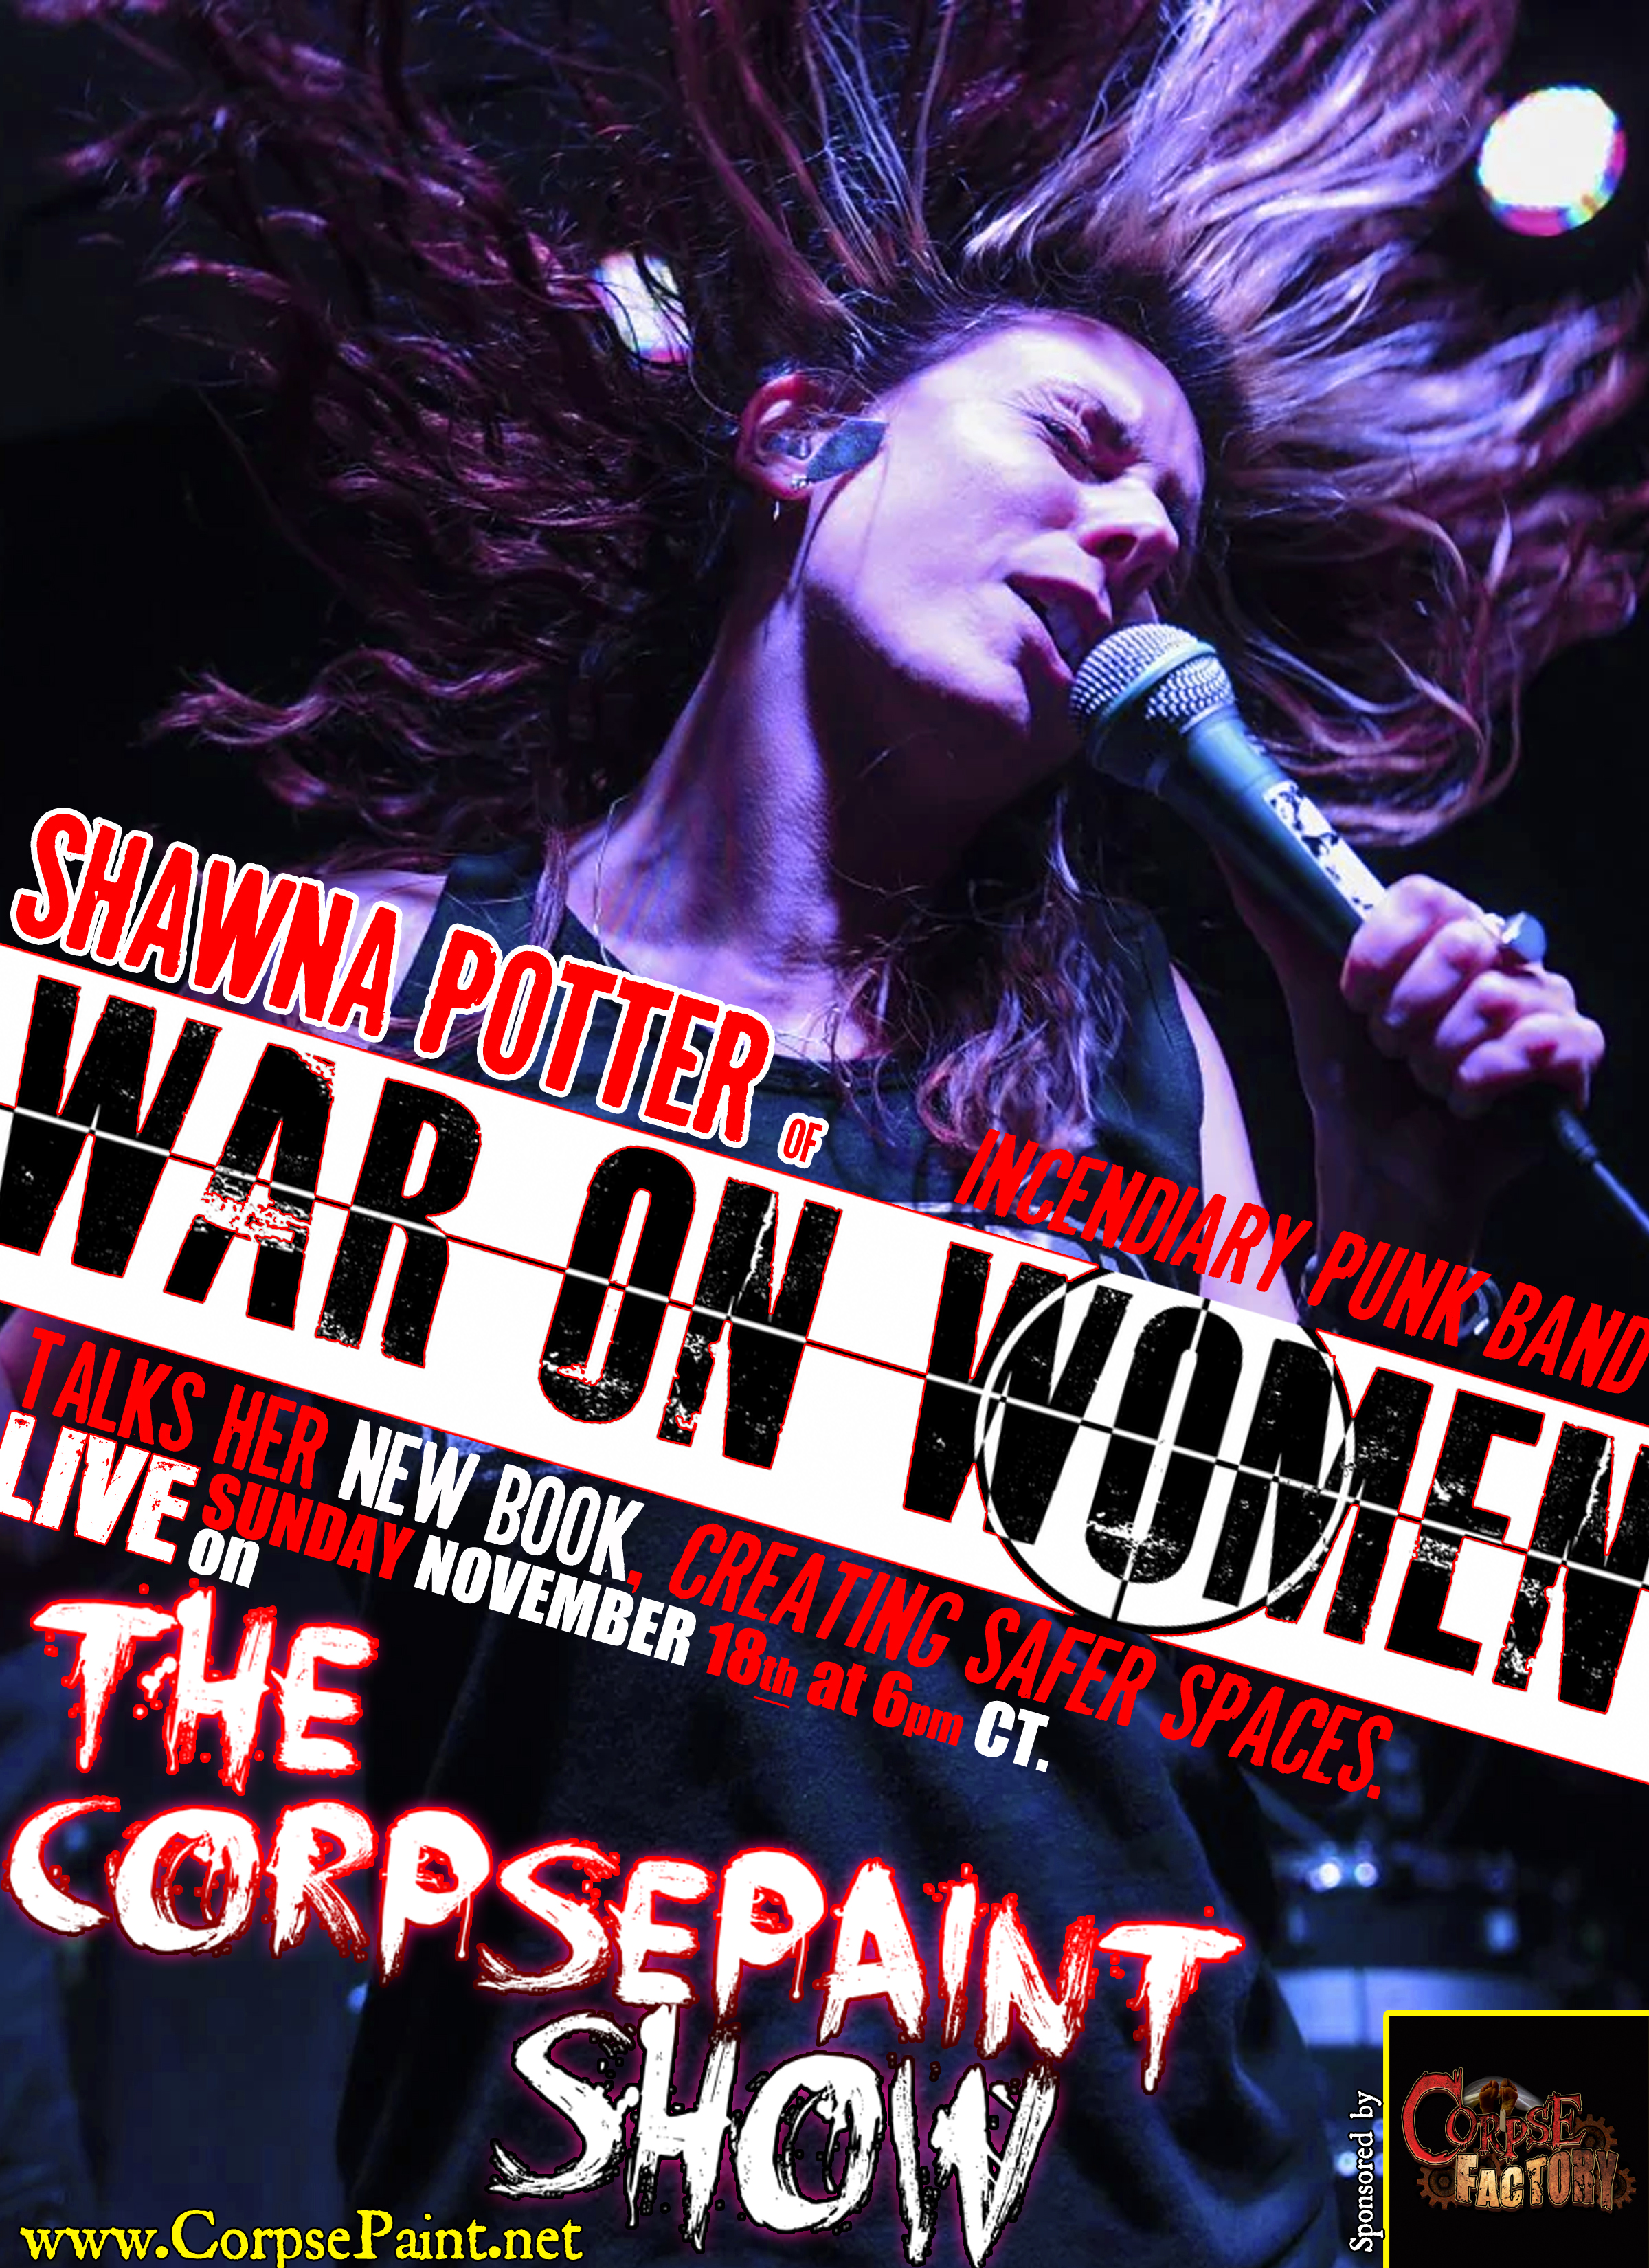 Nov 18th - War on Women